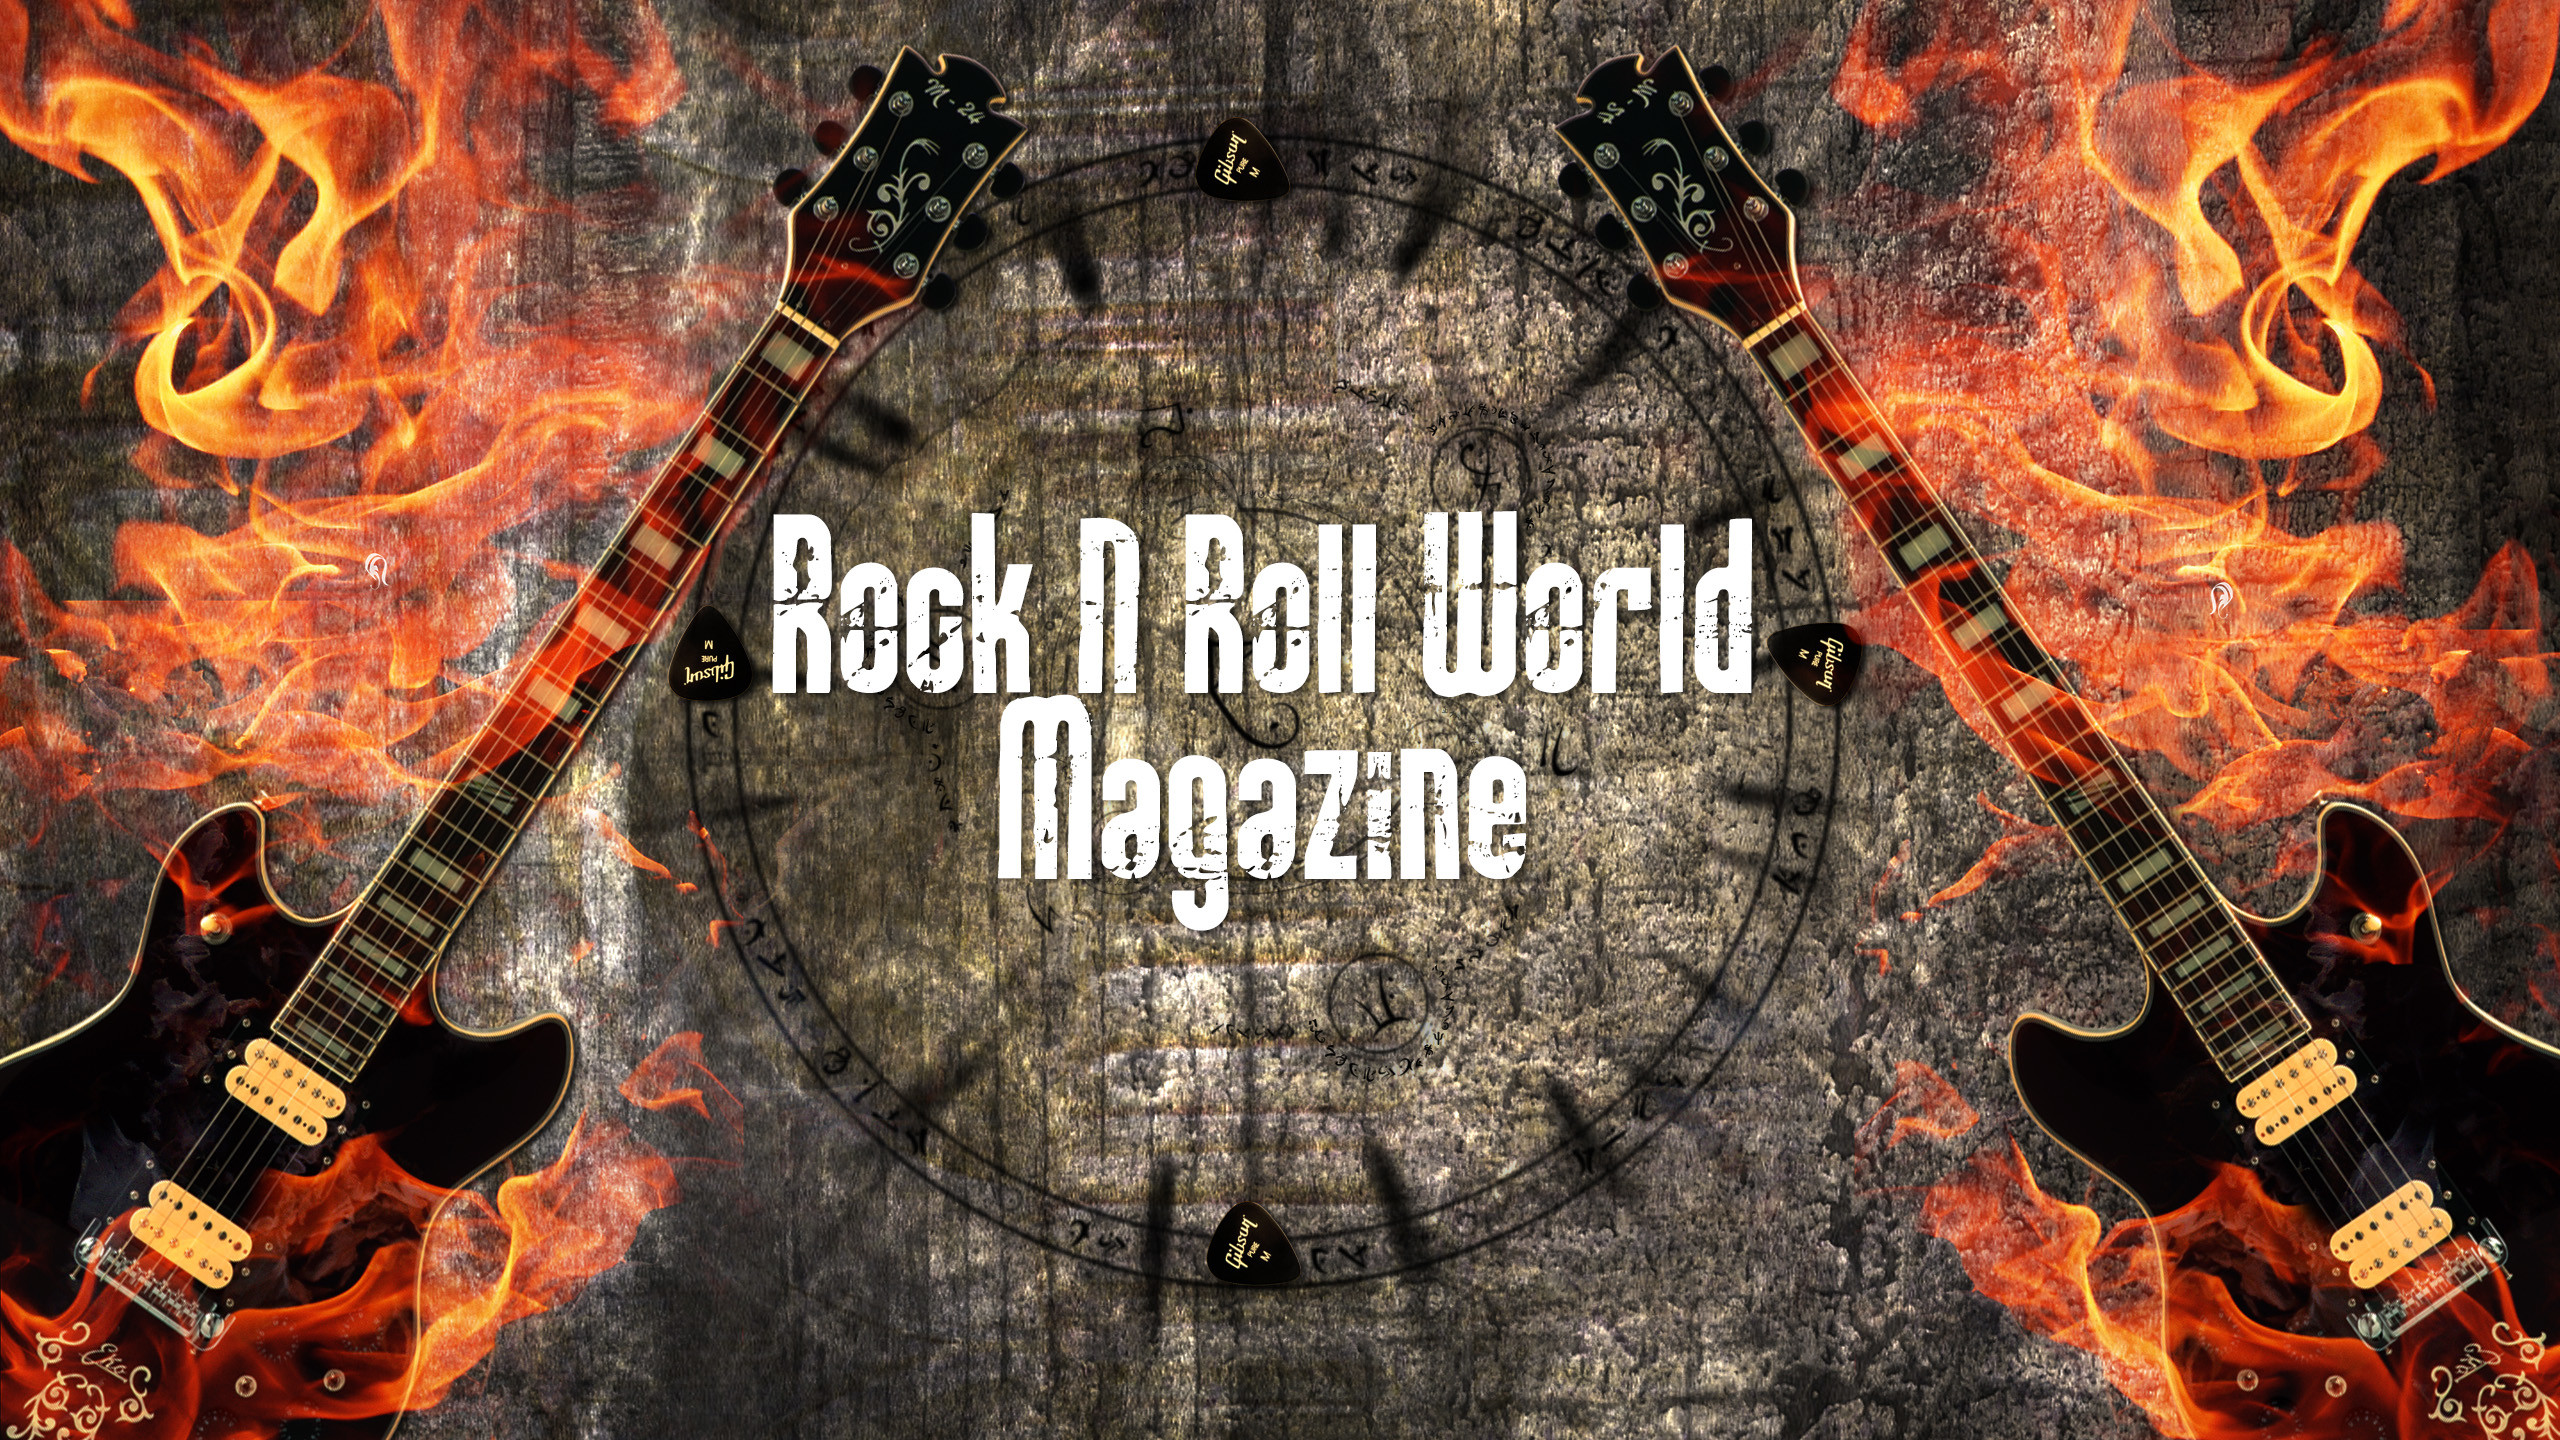 Heavy Metal Magazine Wallpapers Posted By Ryan Walker